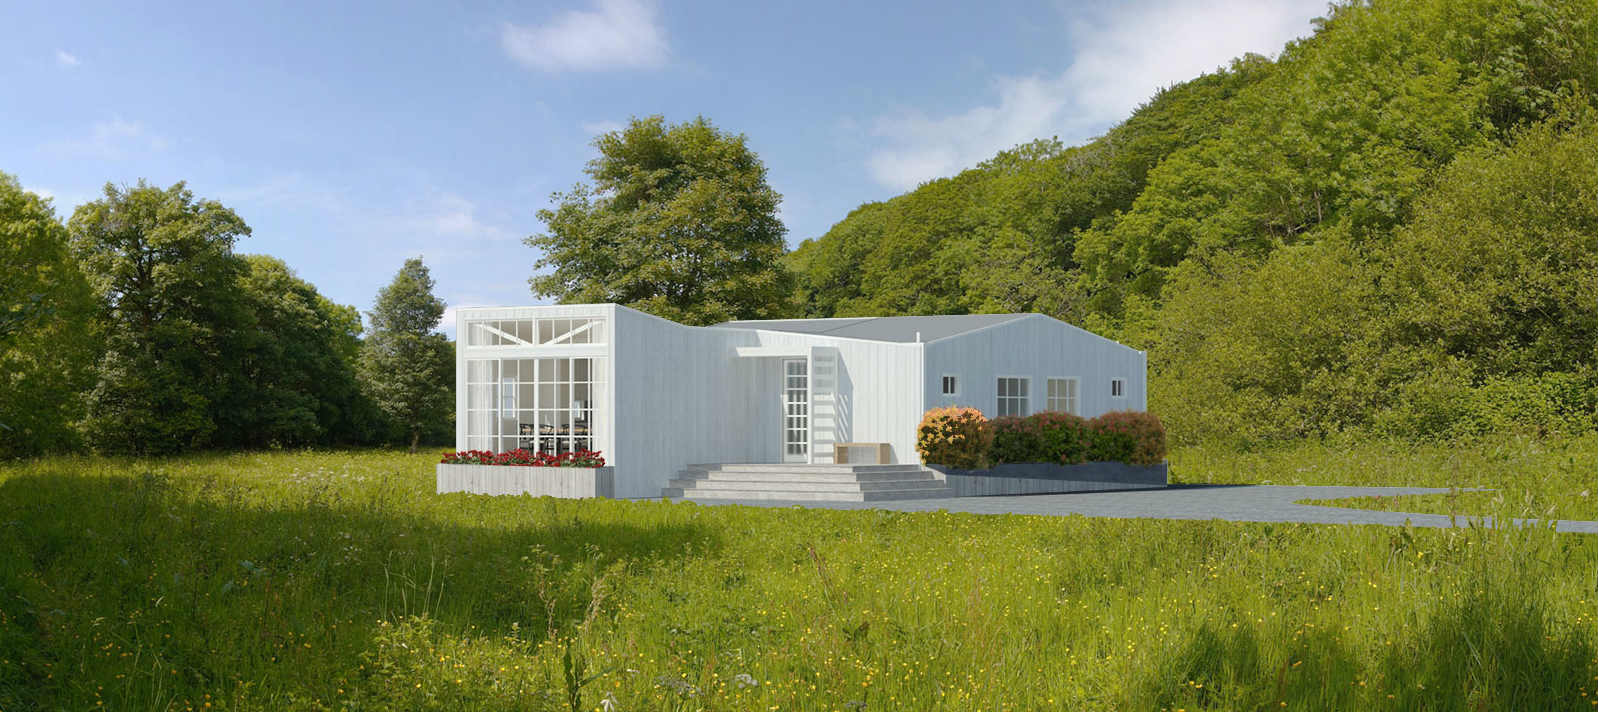 uphomes review prefab and modular homes.jpg